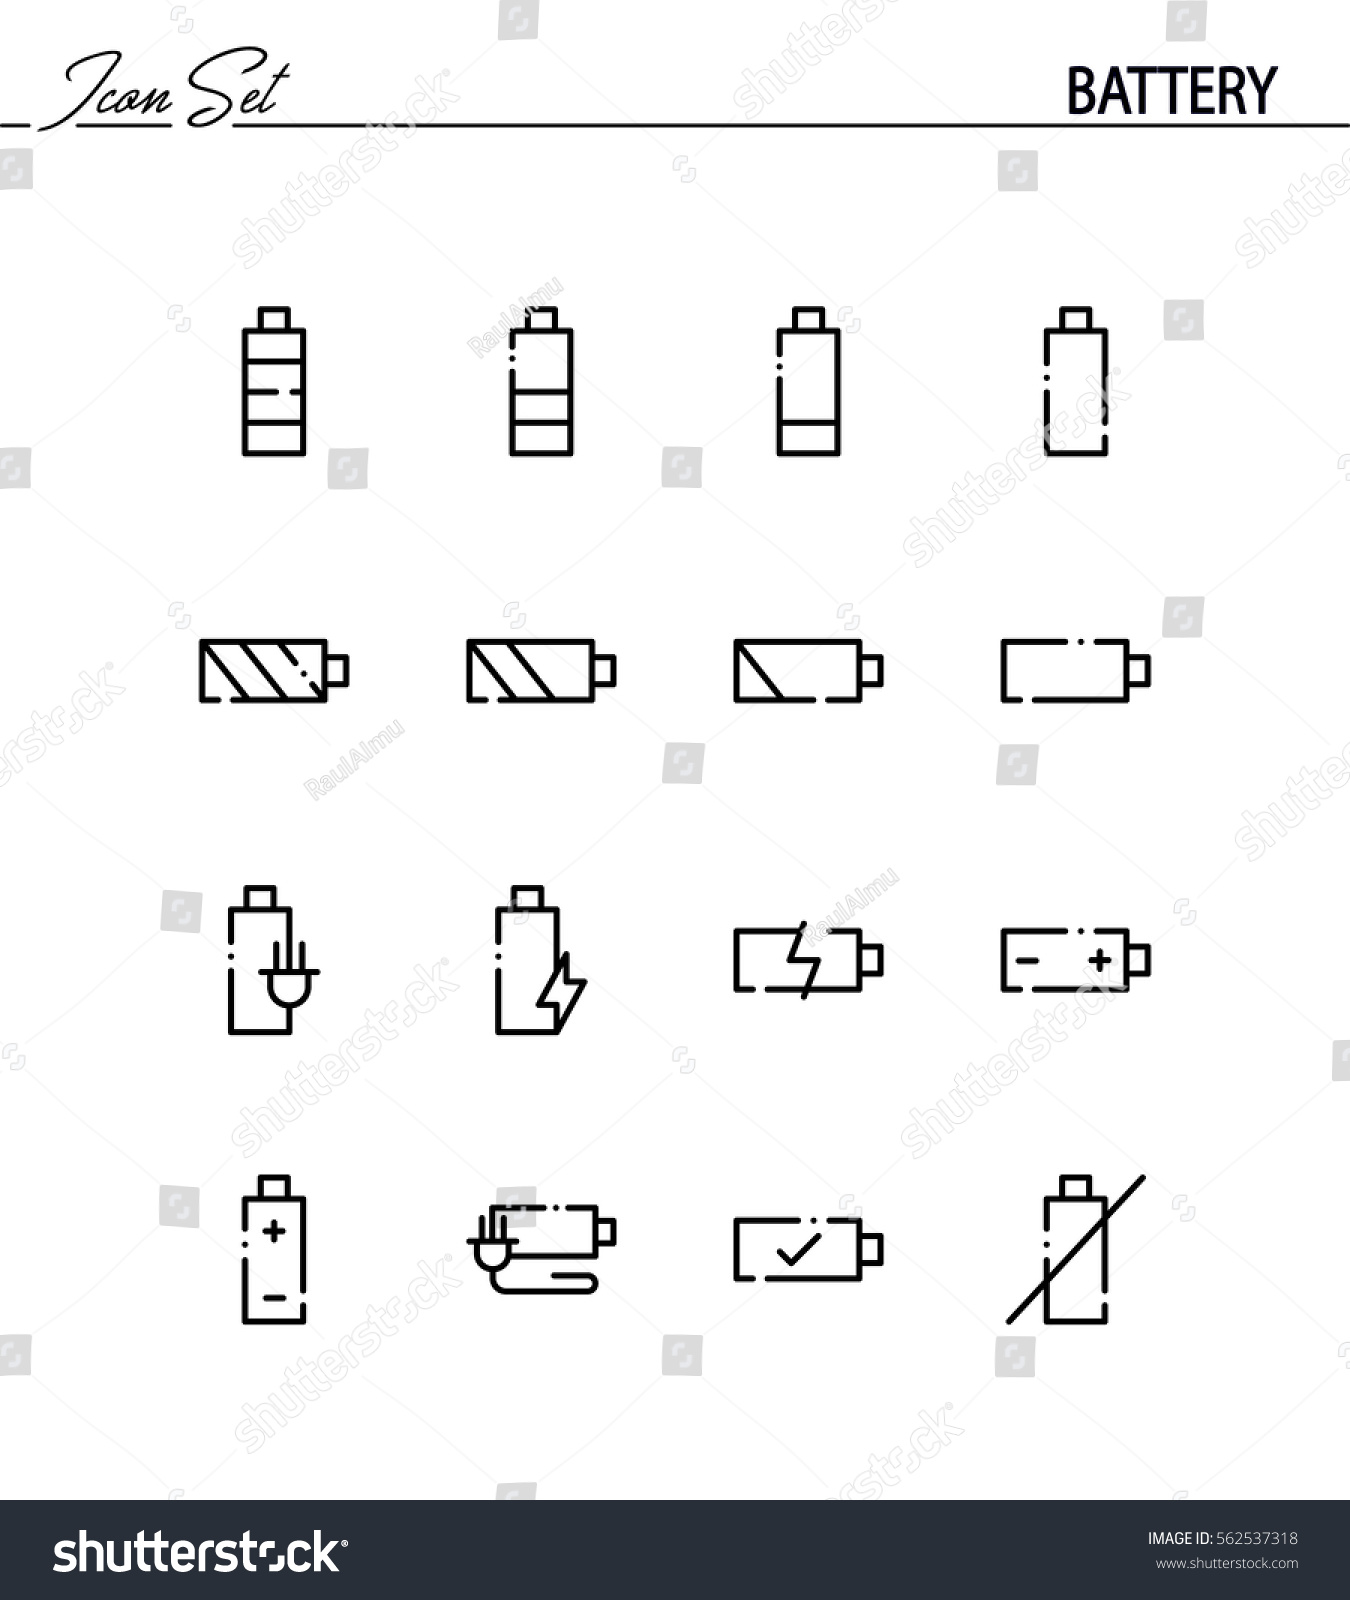 Symbols for battery dolgular battery flat icon set collection high stock vector 562537318 biocorpaavc